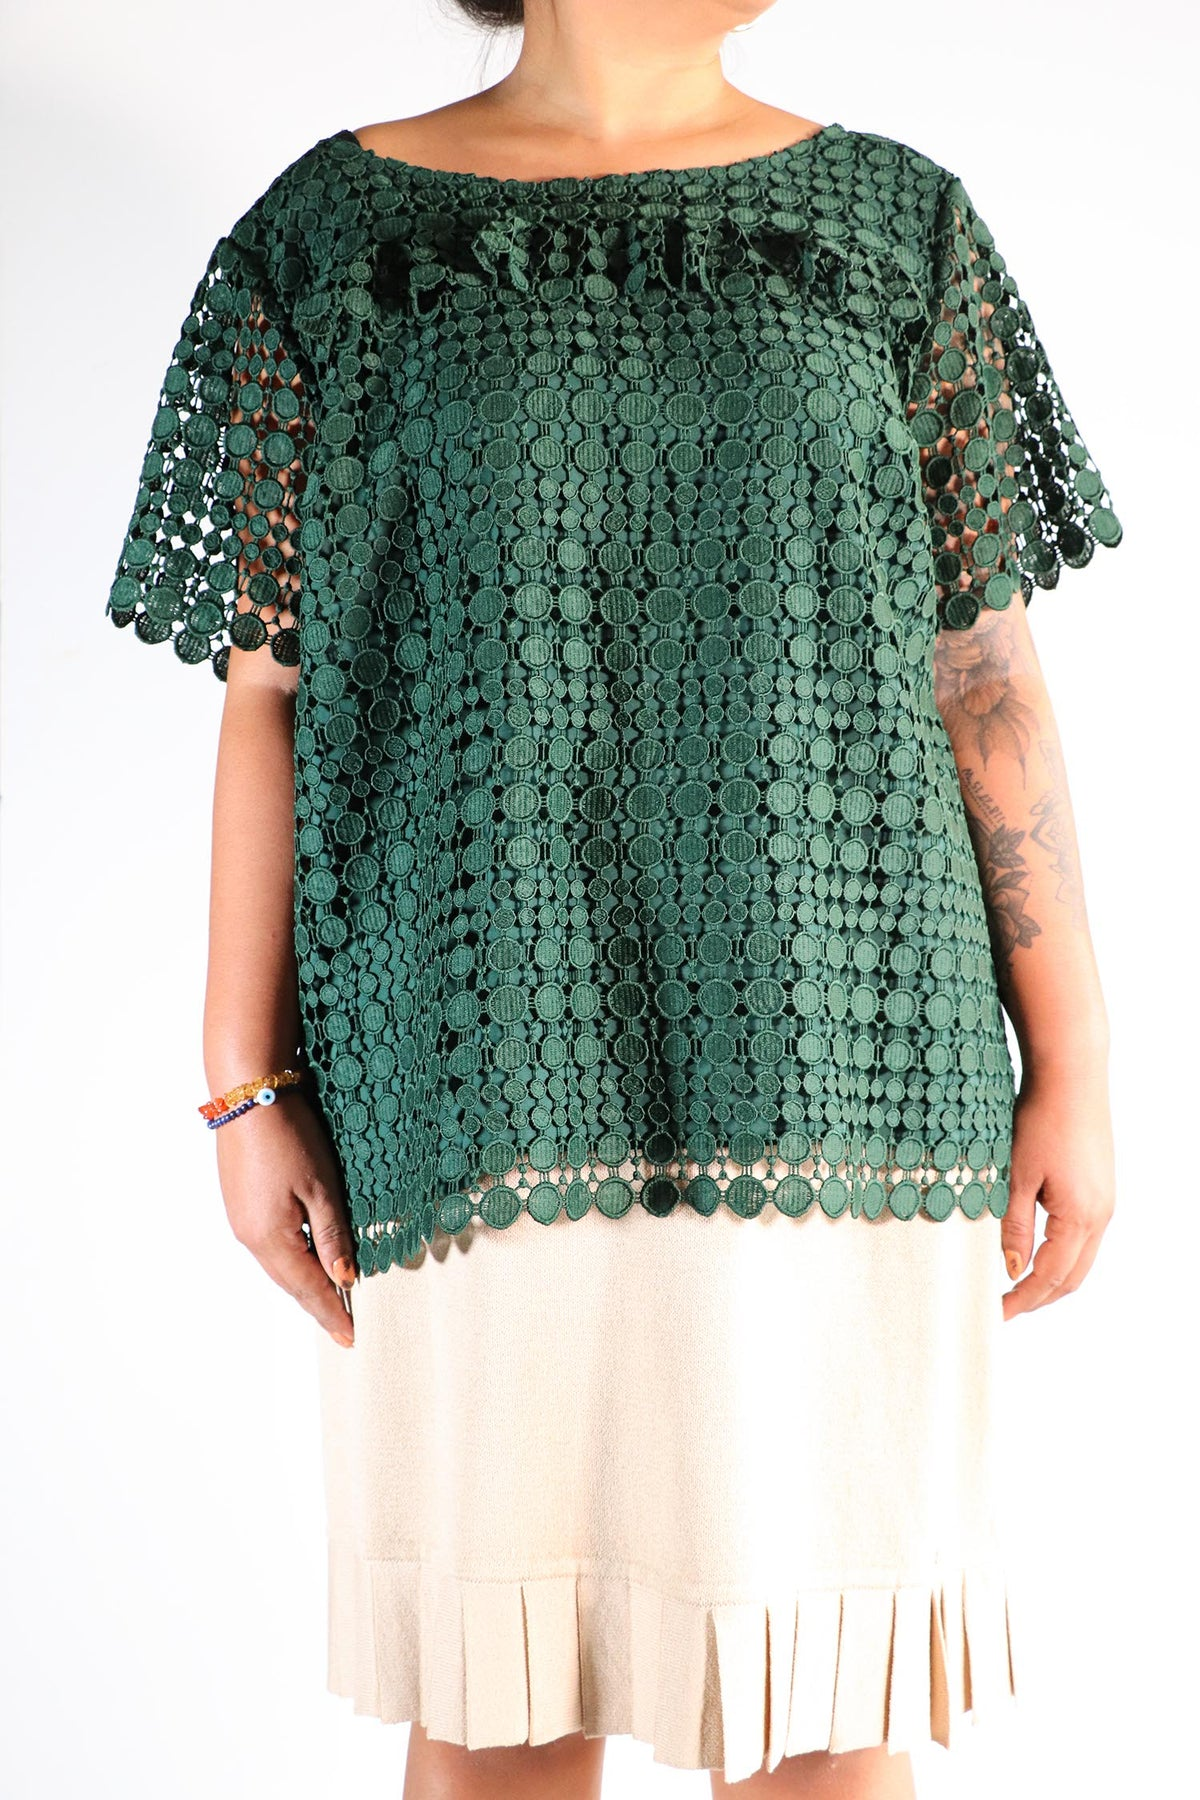 RSVP by Talbots - Green Embroidered Eyelet Top -2X